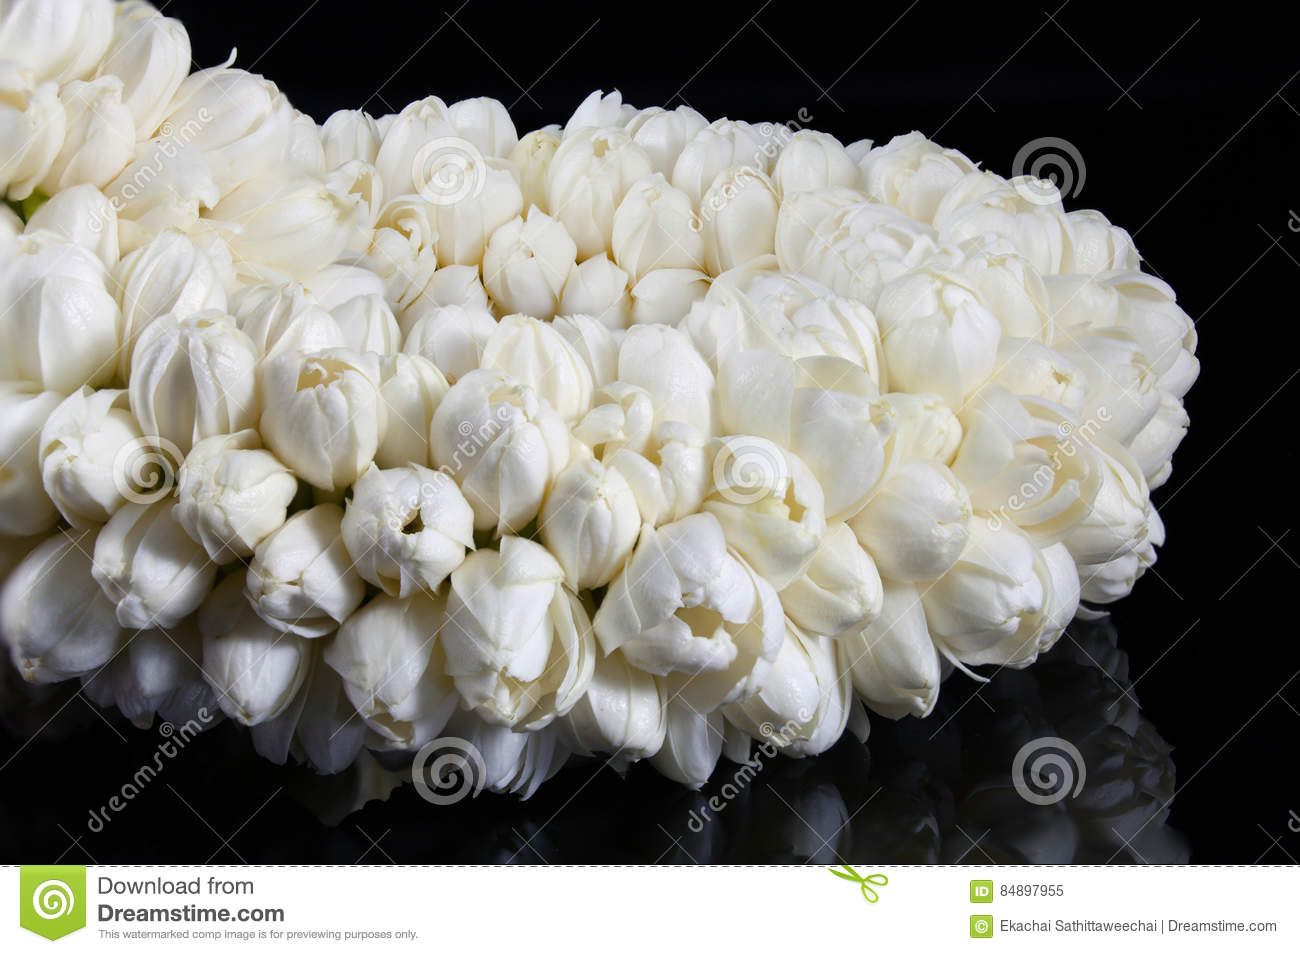 Jasmine rose flowers stock images download 1277 photos beautiful jasmine garland of flowers handmaded royalty free stock images izmirmasajfo